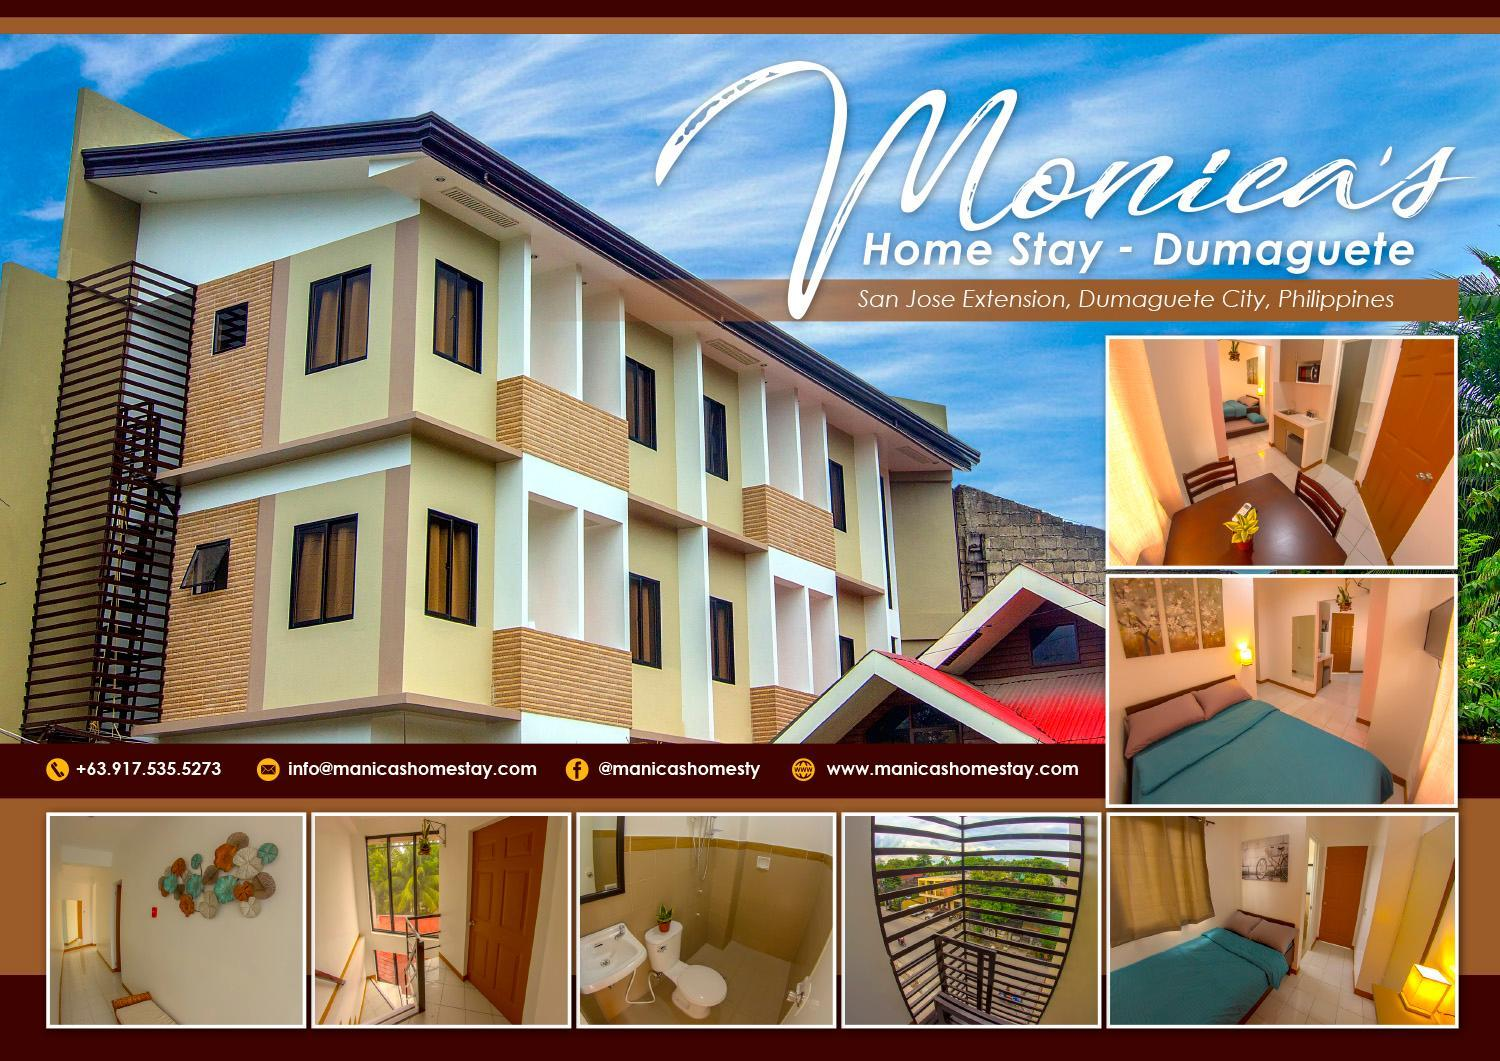 MONICA HOMESTAY - Hotels Information/Map/Reviews/Reservation